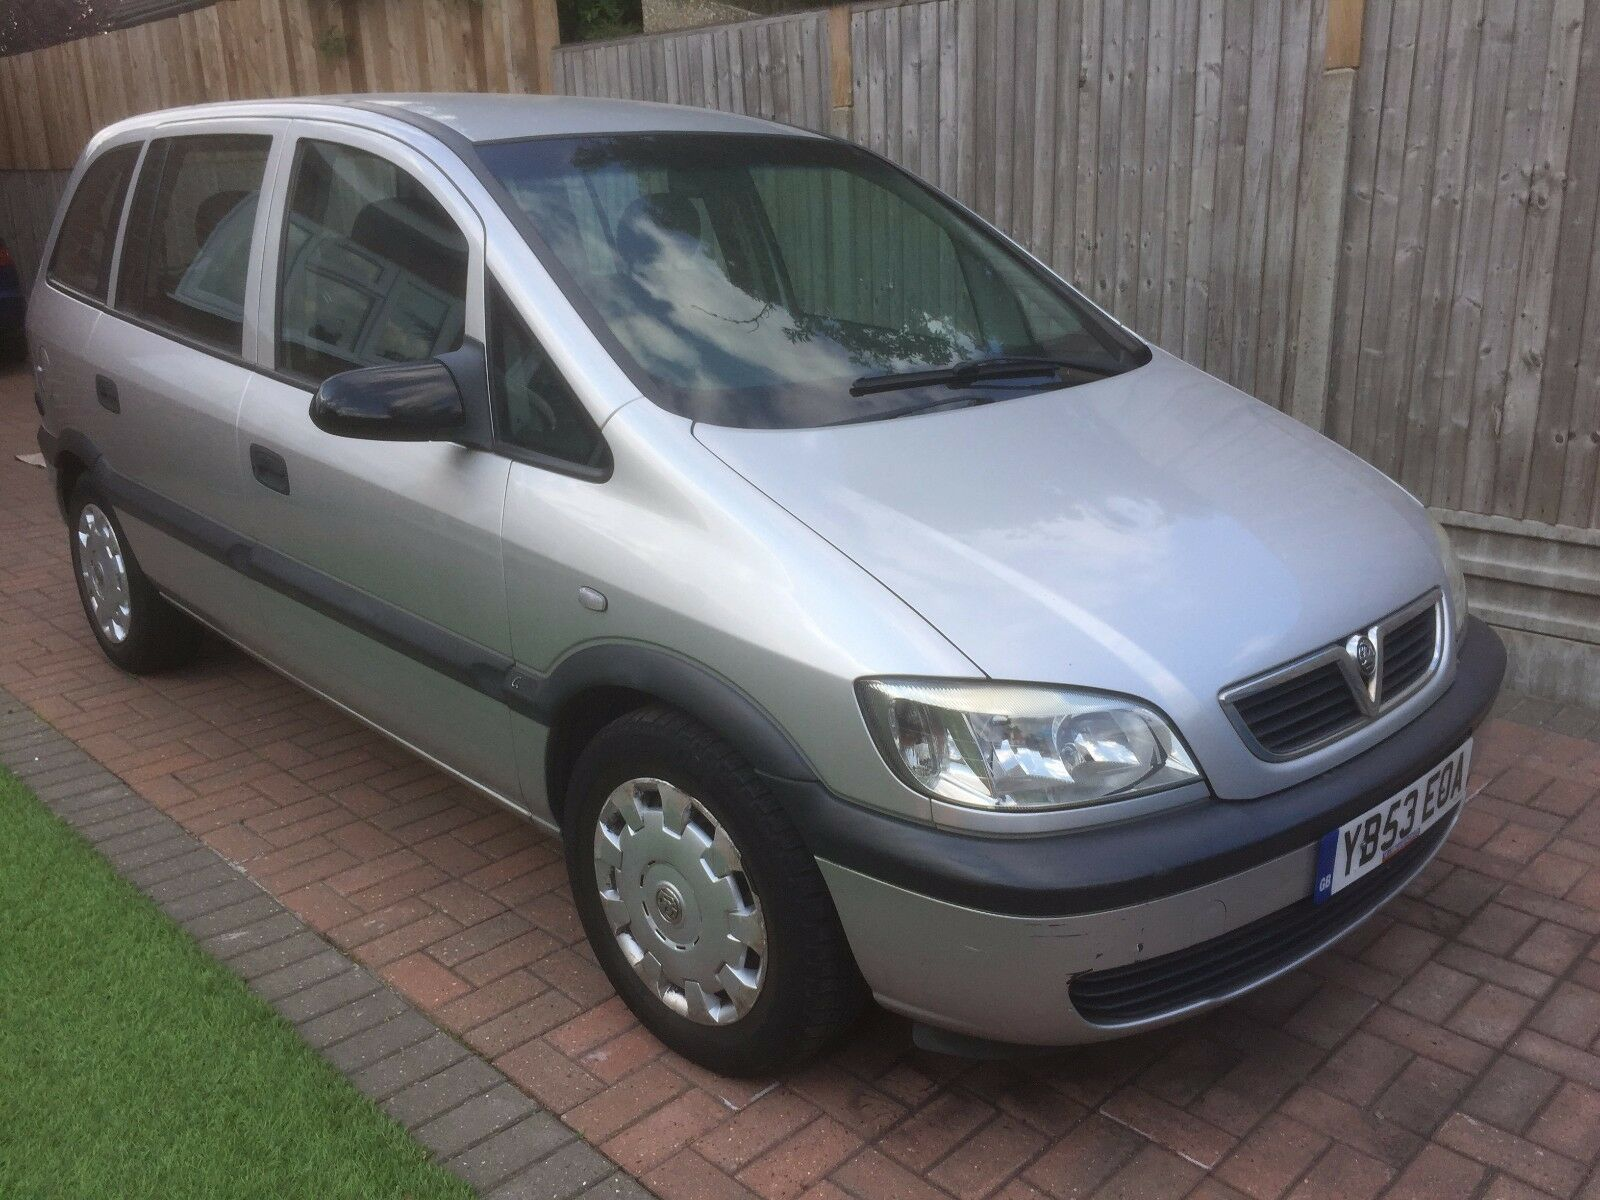 2003 vauxhall zafira 16v club auto silver lpg converted 7 seater picclick uk. Black Bedroom Furniture Sets. Home Design Ideas